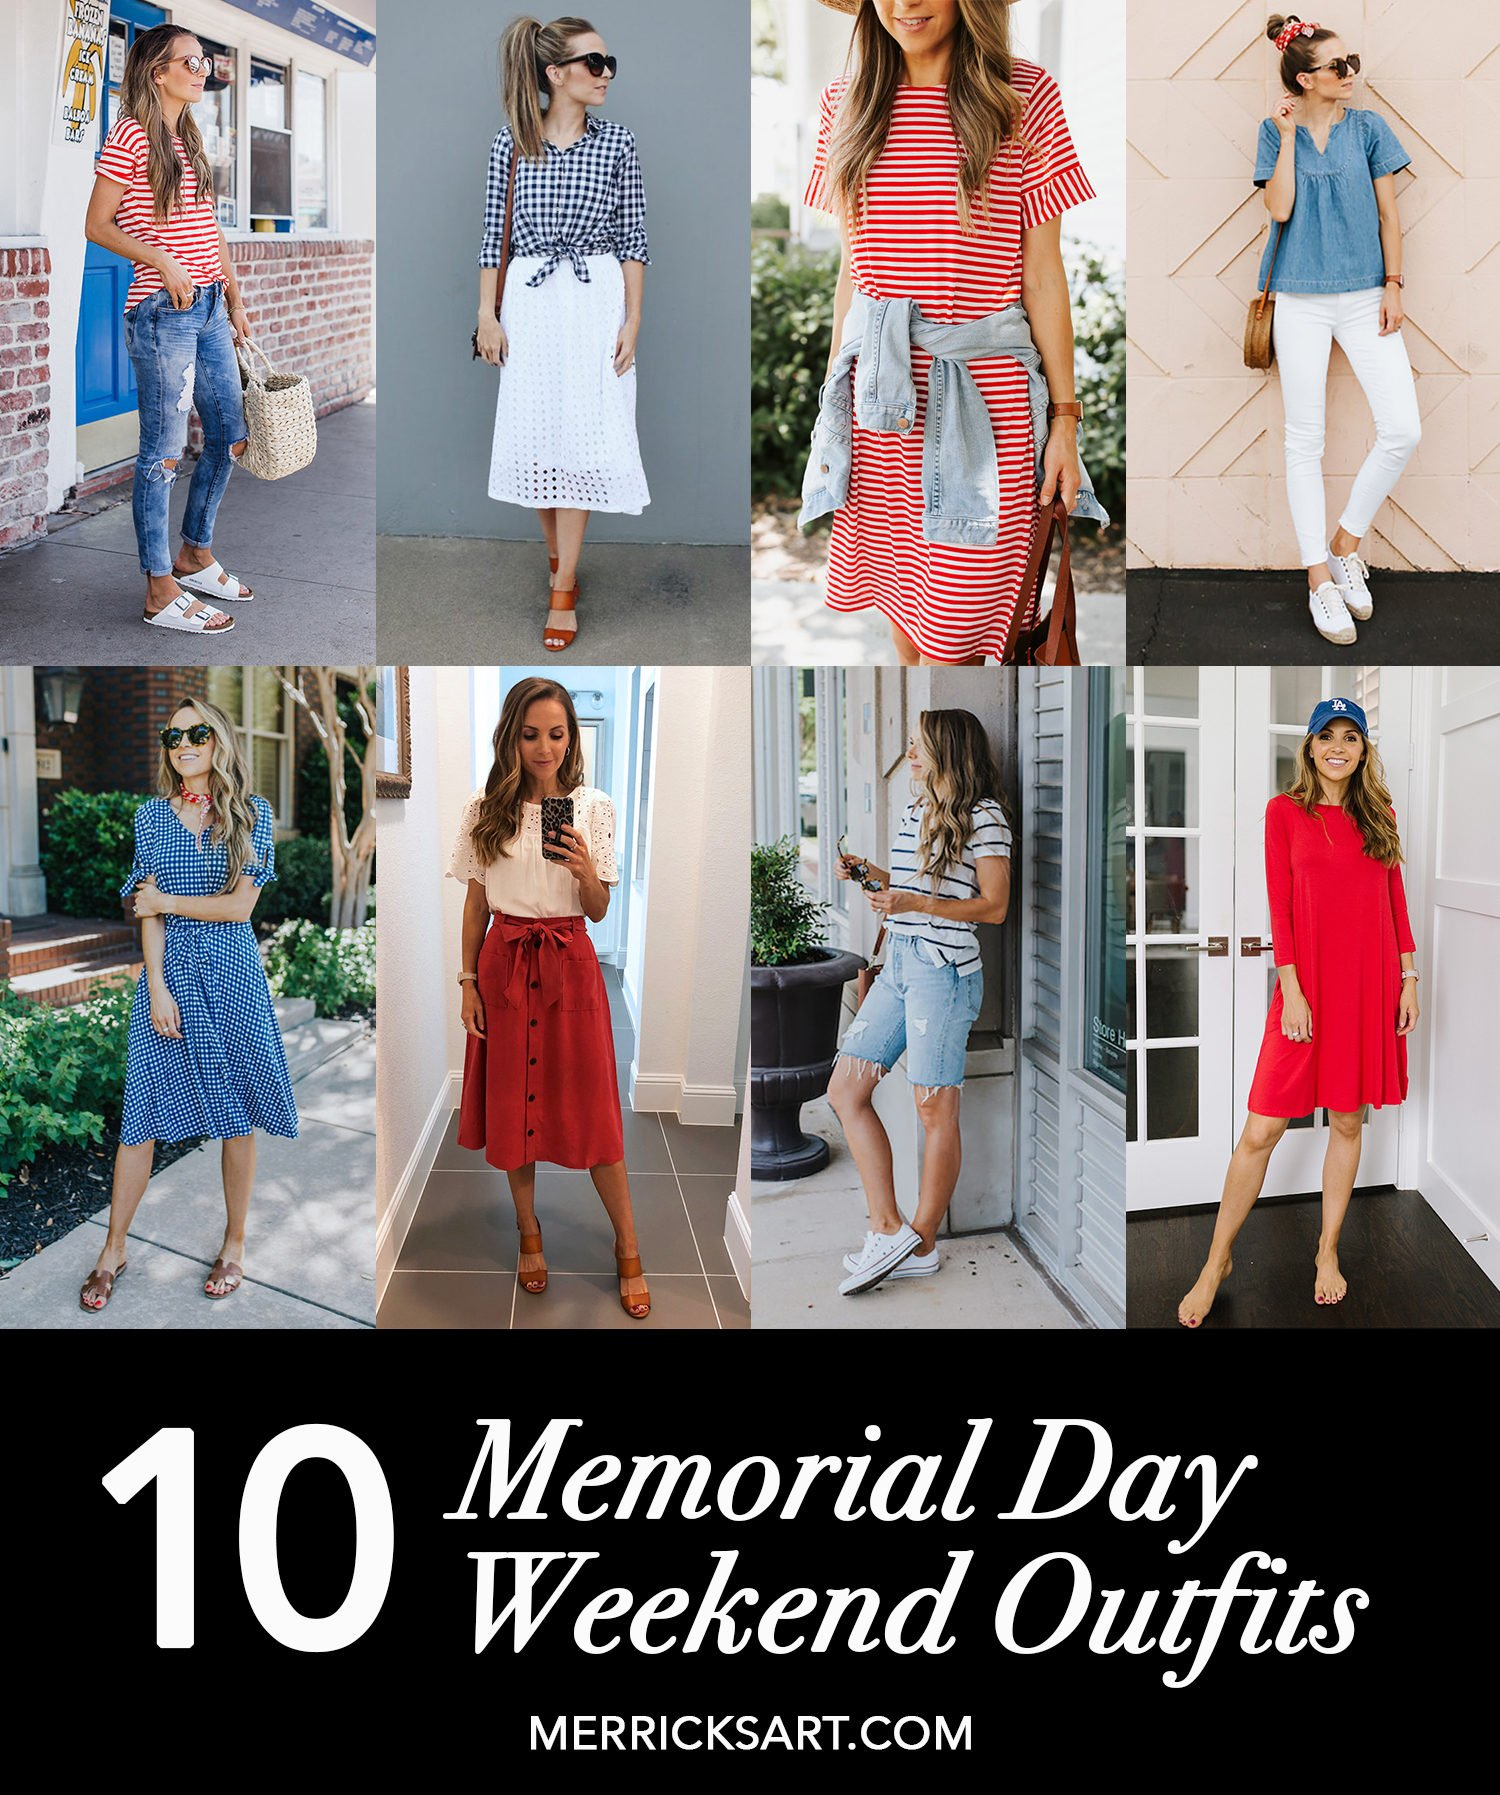 10 memorial day weekend outfits